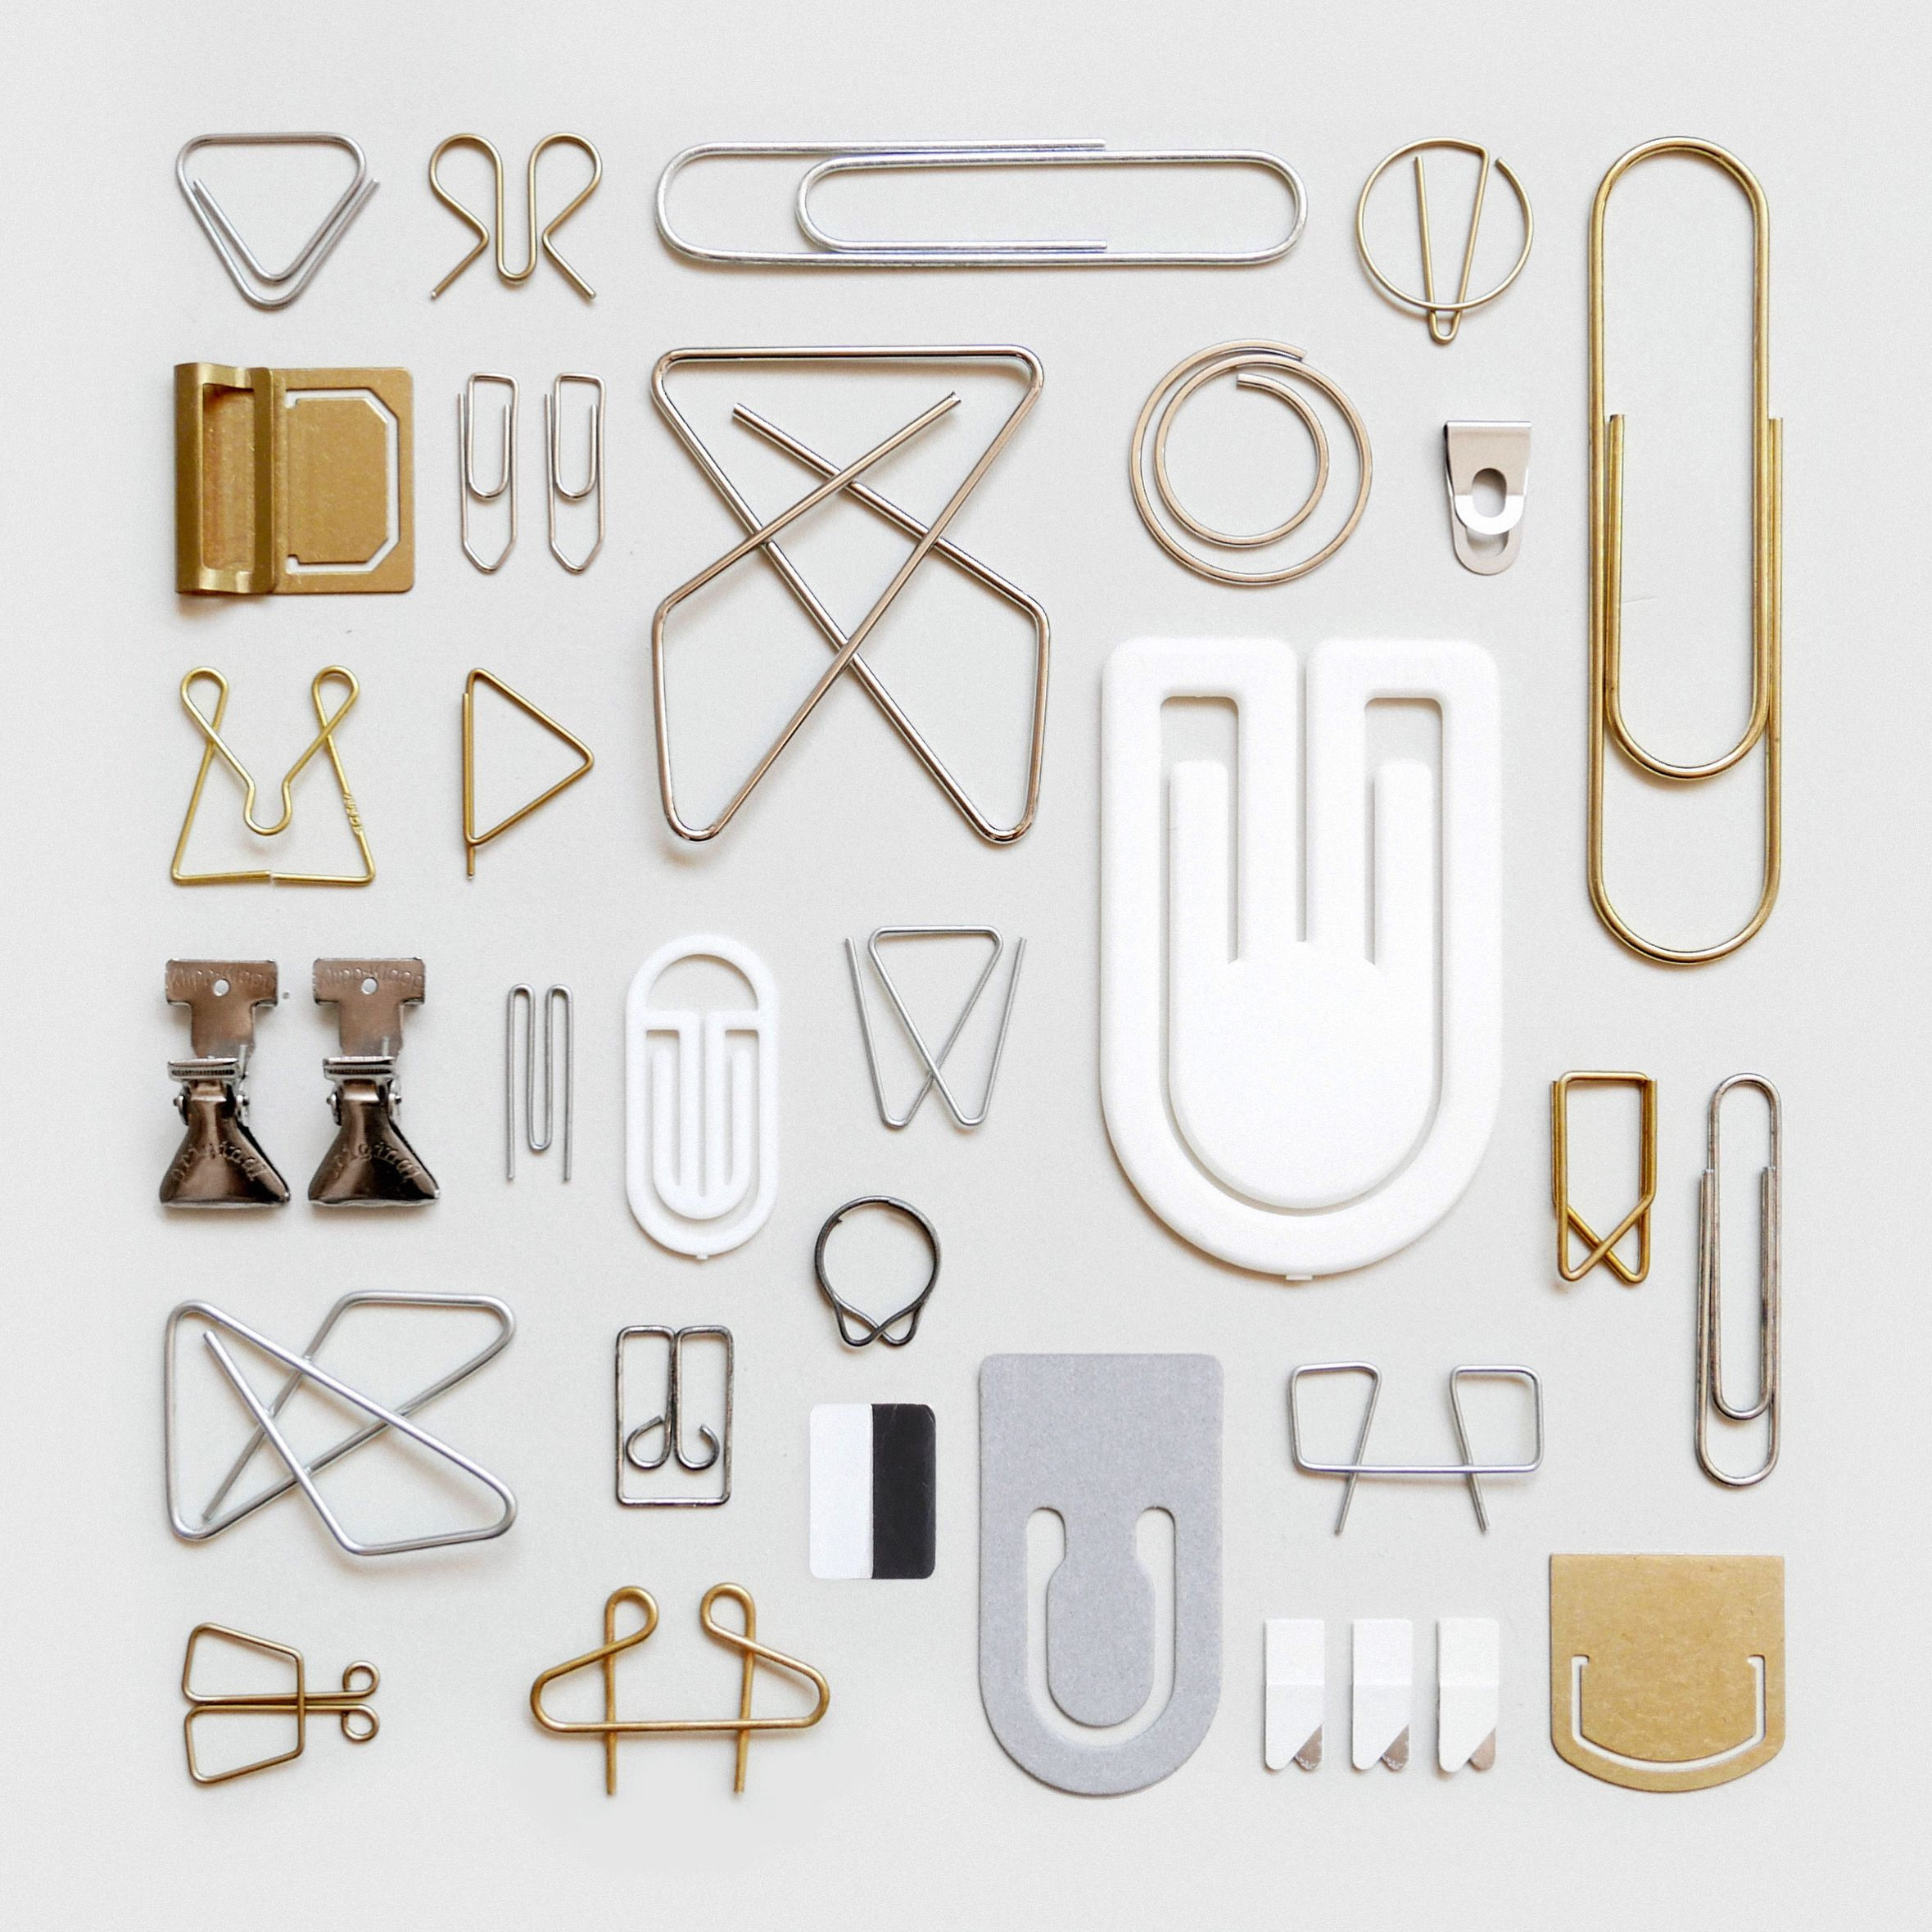 Paperclip collection | Paper clip, Cool notebooks, Vintage stationery